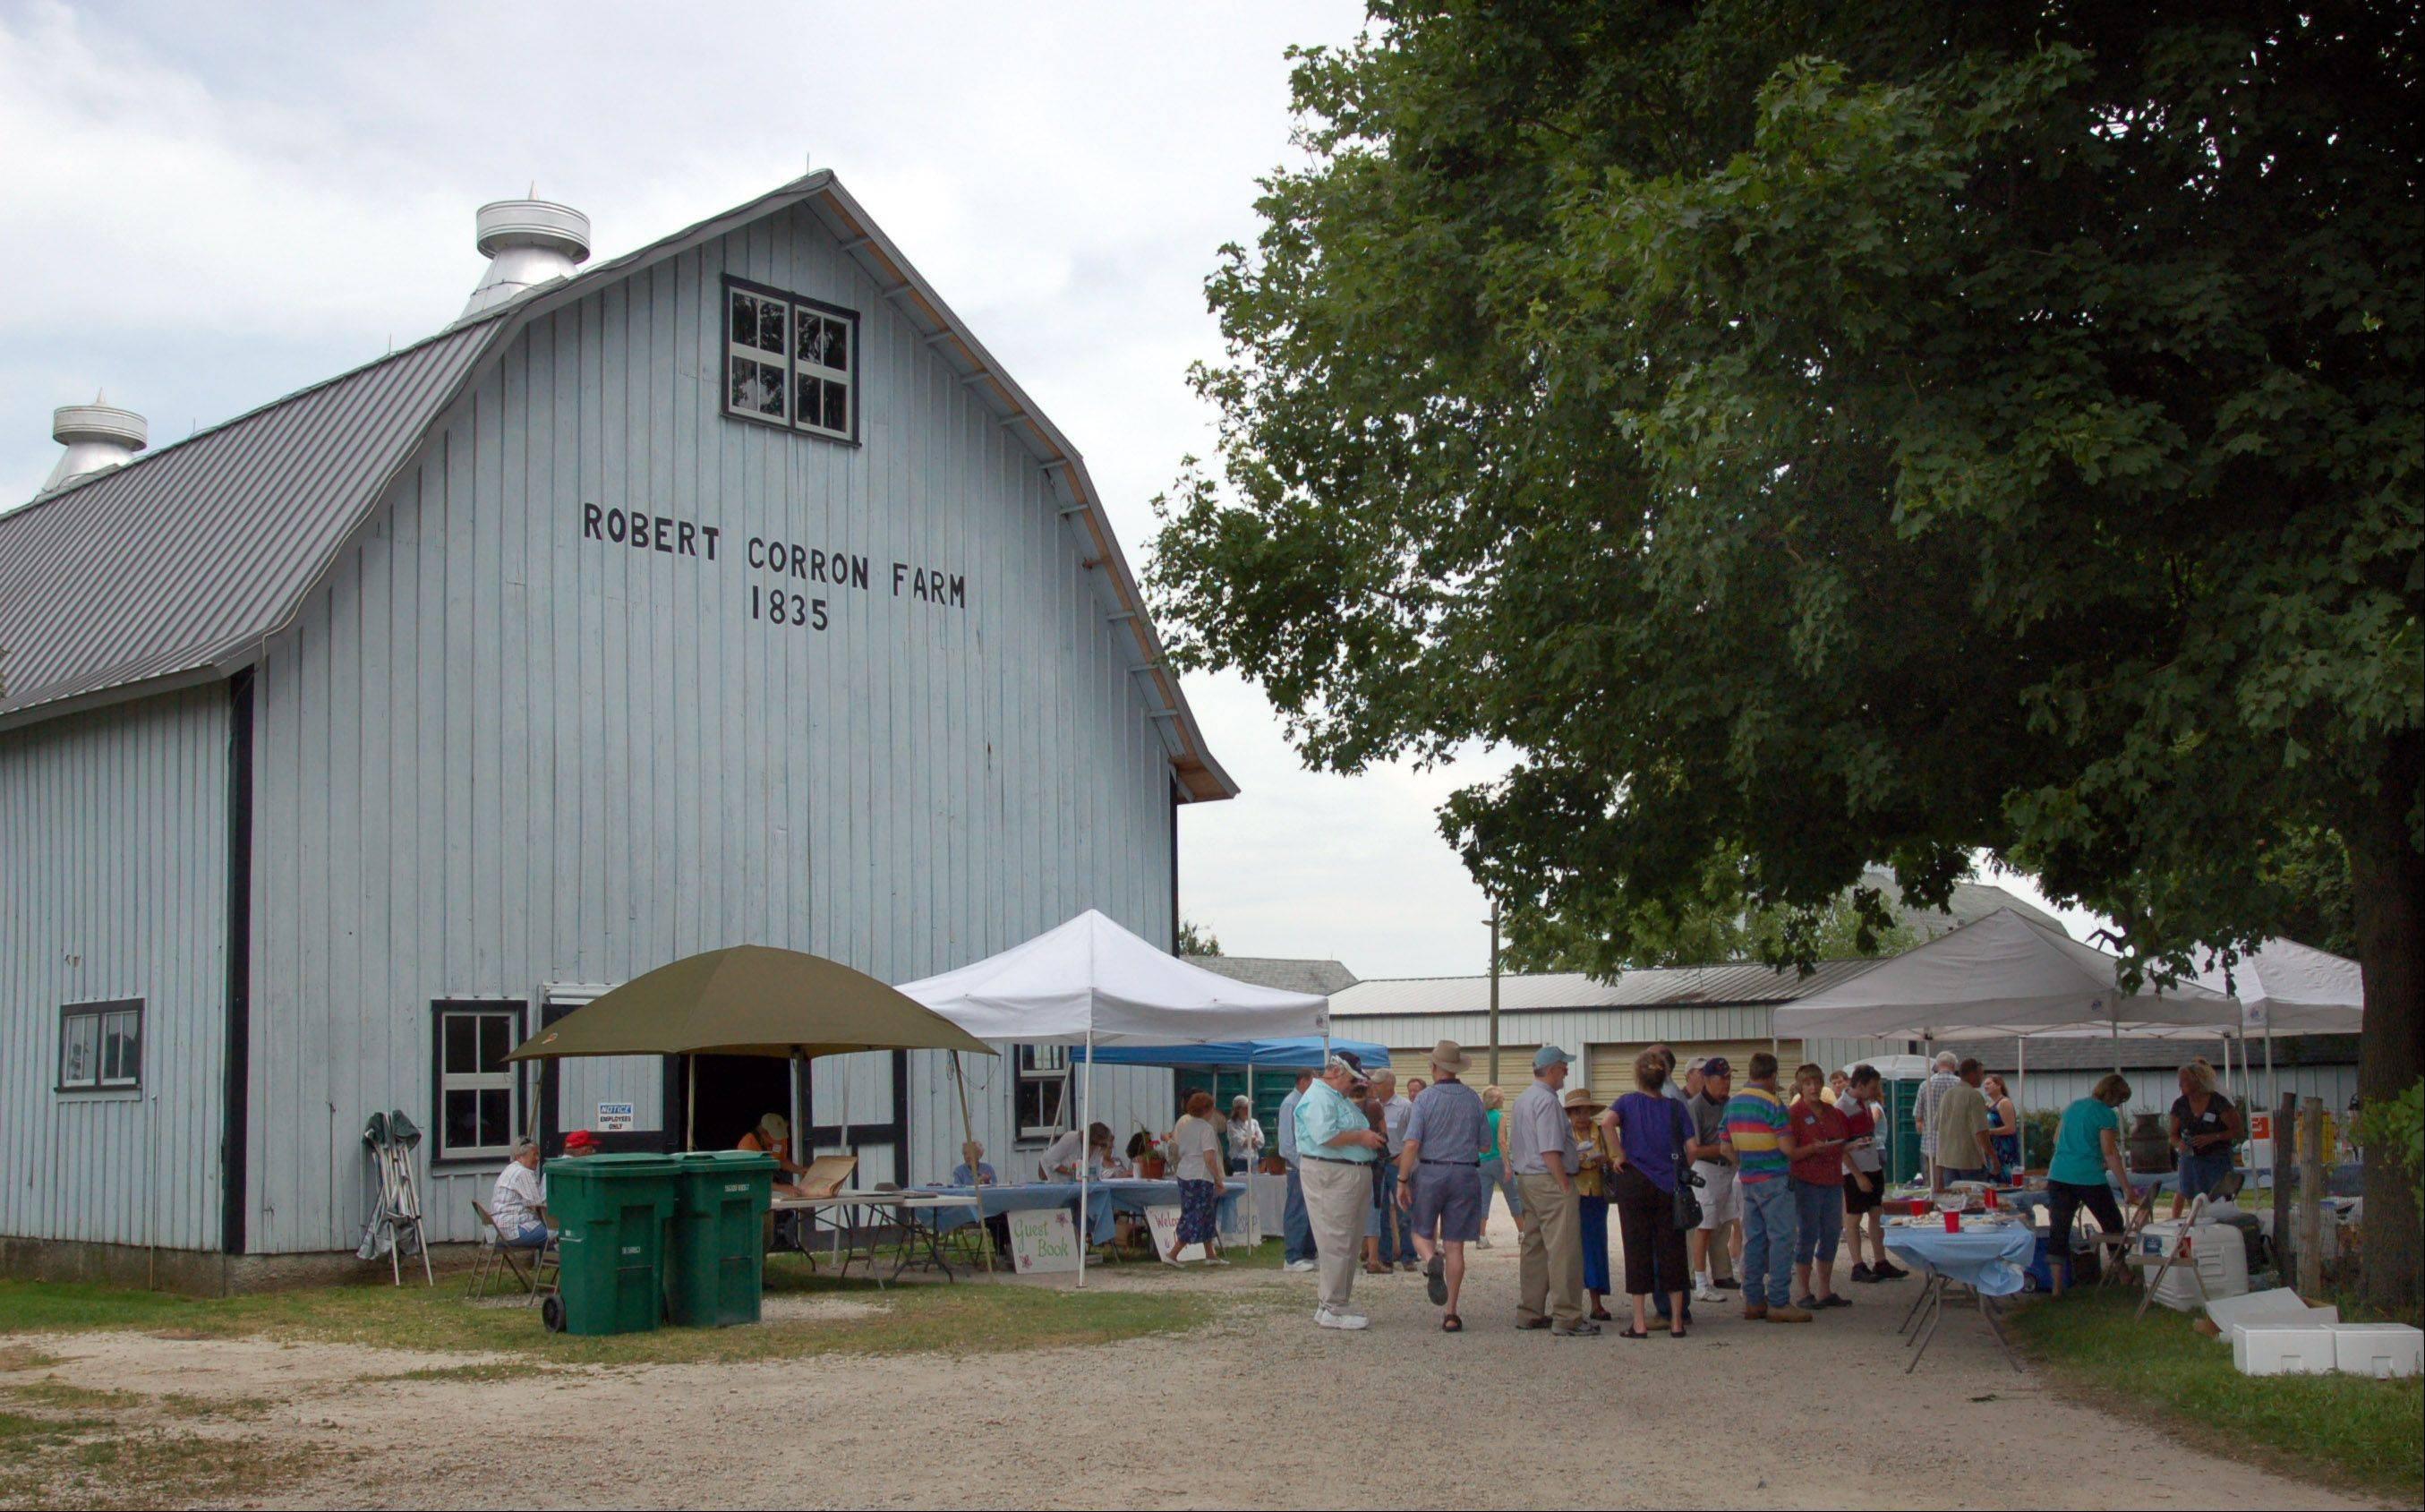 The 5th annual Campton Township Prairie Fest will be held from 1 to 5 p.m. Saturday at the Corron Farm, 7N761 Corron Road.